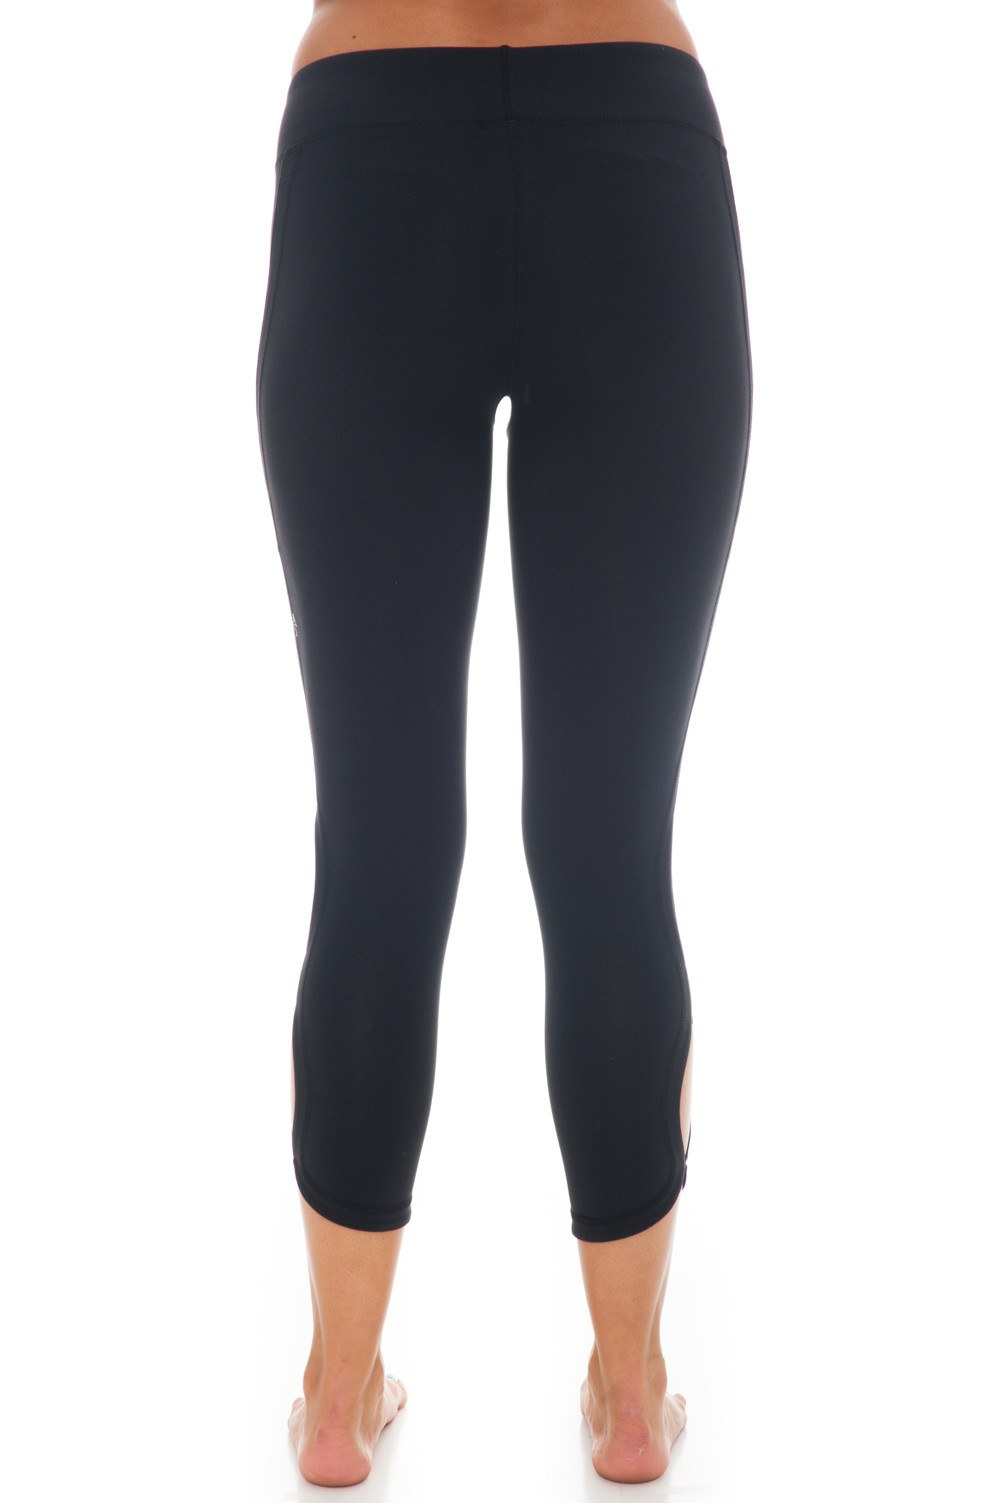 Legging - Crop Leg With Detail - 3